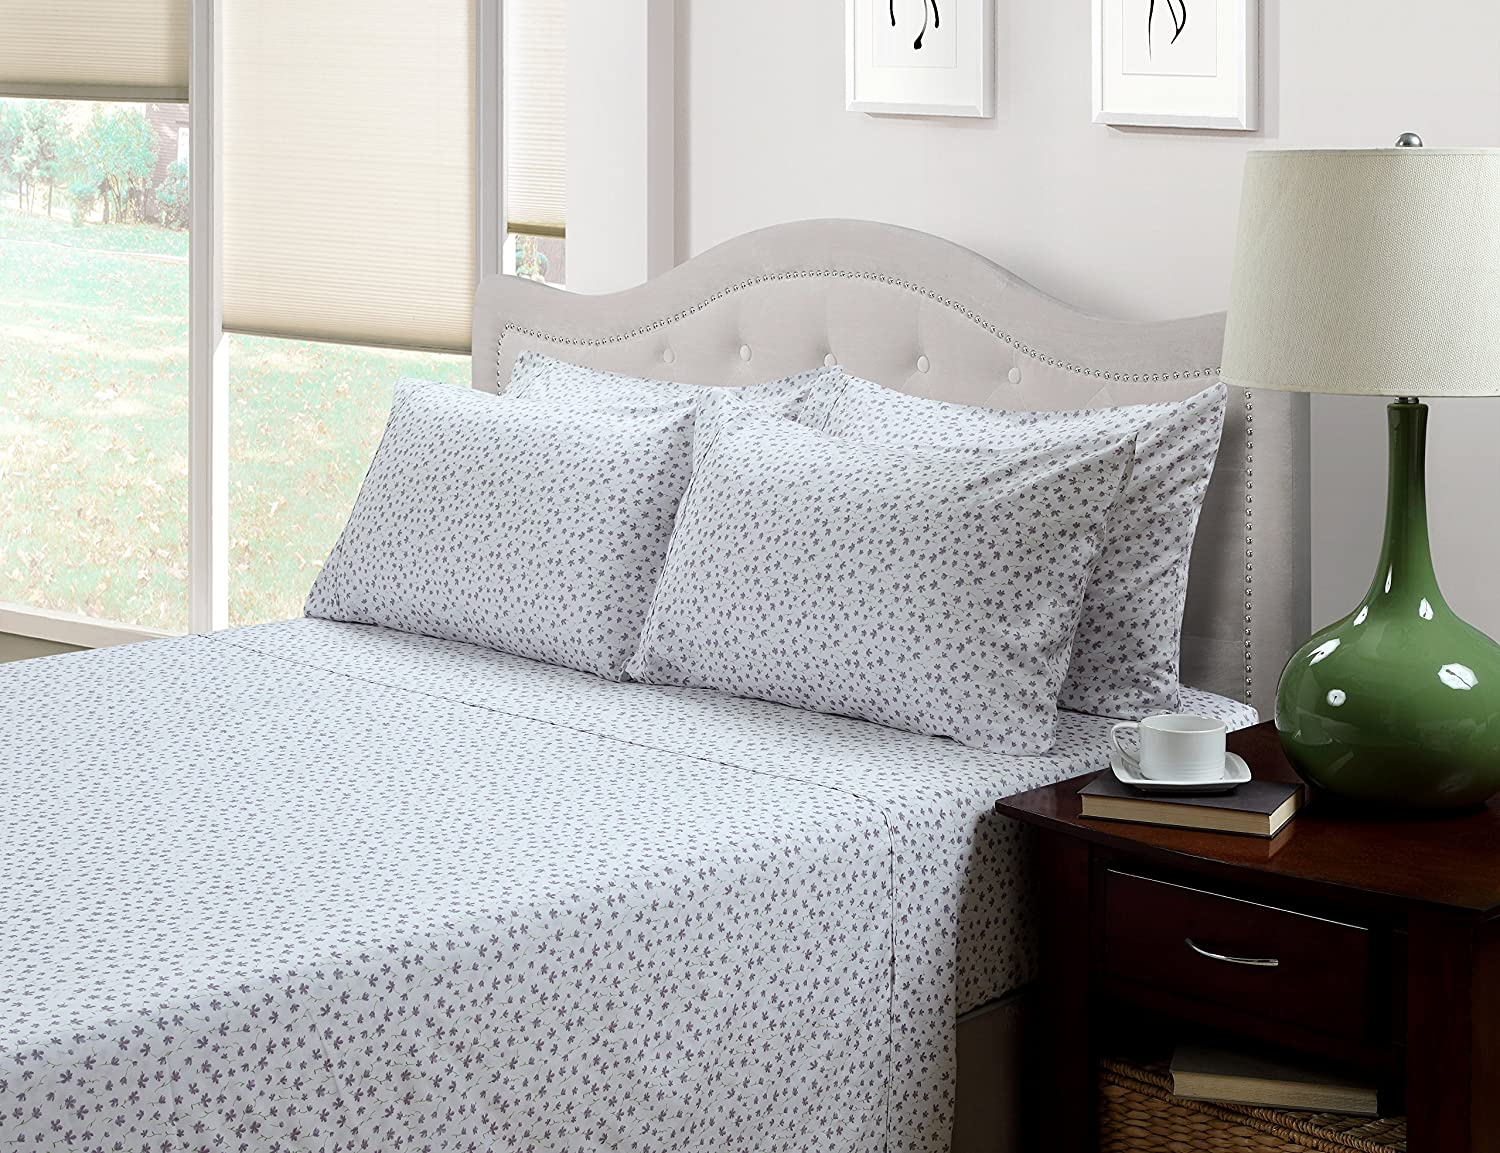 Lavender Floral Britannica Home Fashions 02031 214 West 300 Thread Count Ditsy Floral Printed Sheet Set Twin